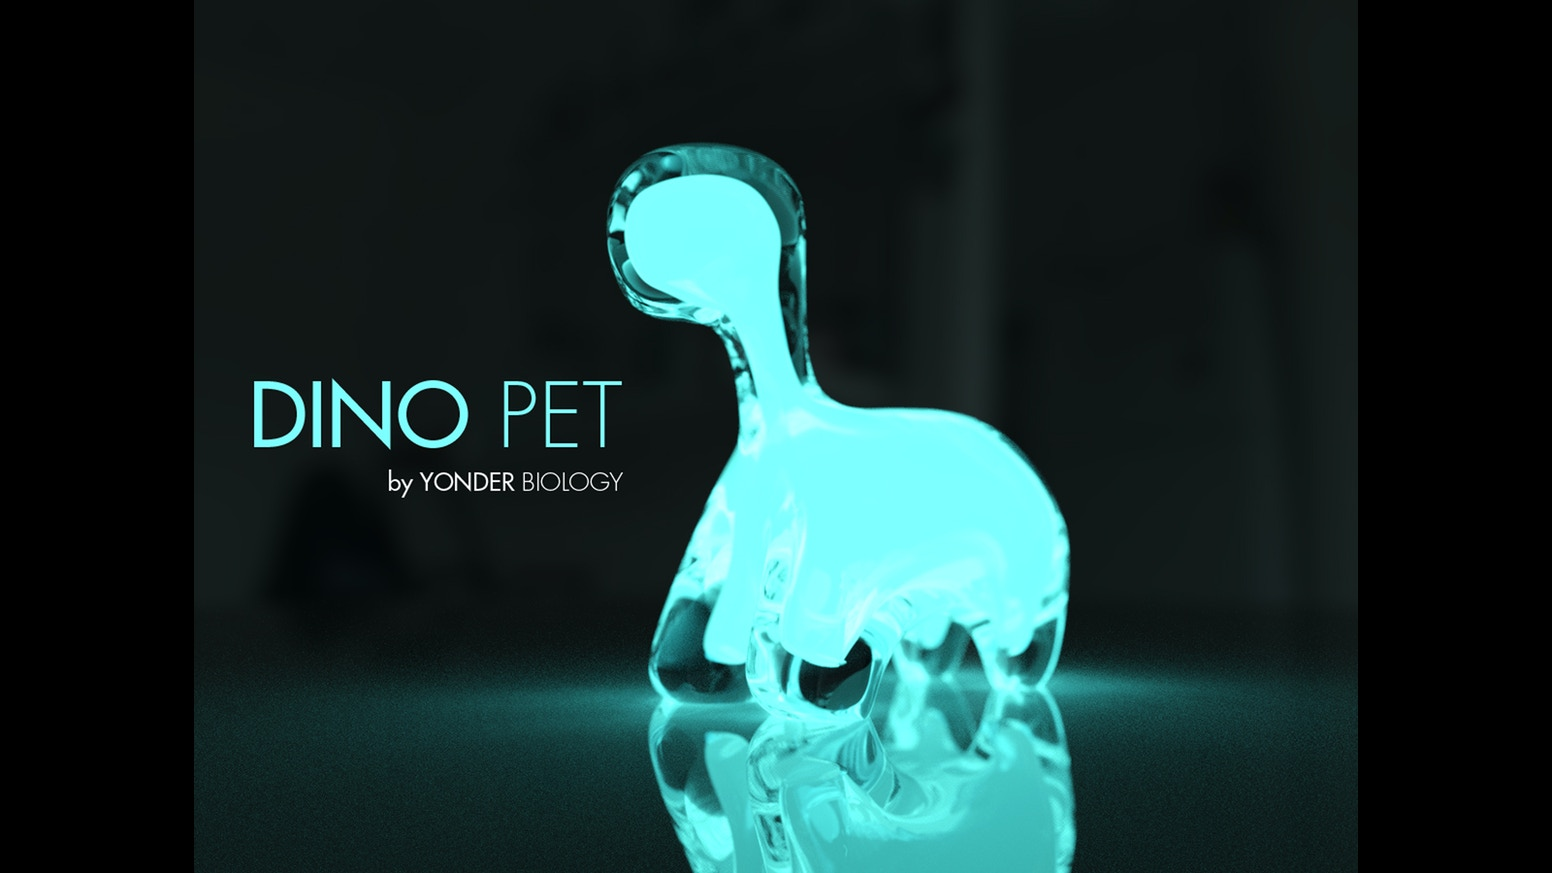 Dino Pet A Living Interactive Bioluminescent Pet By